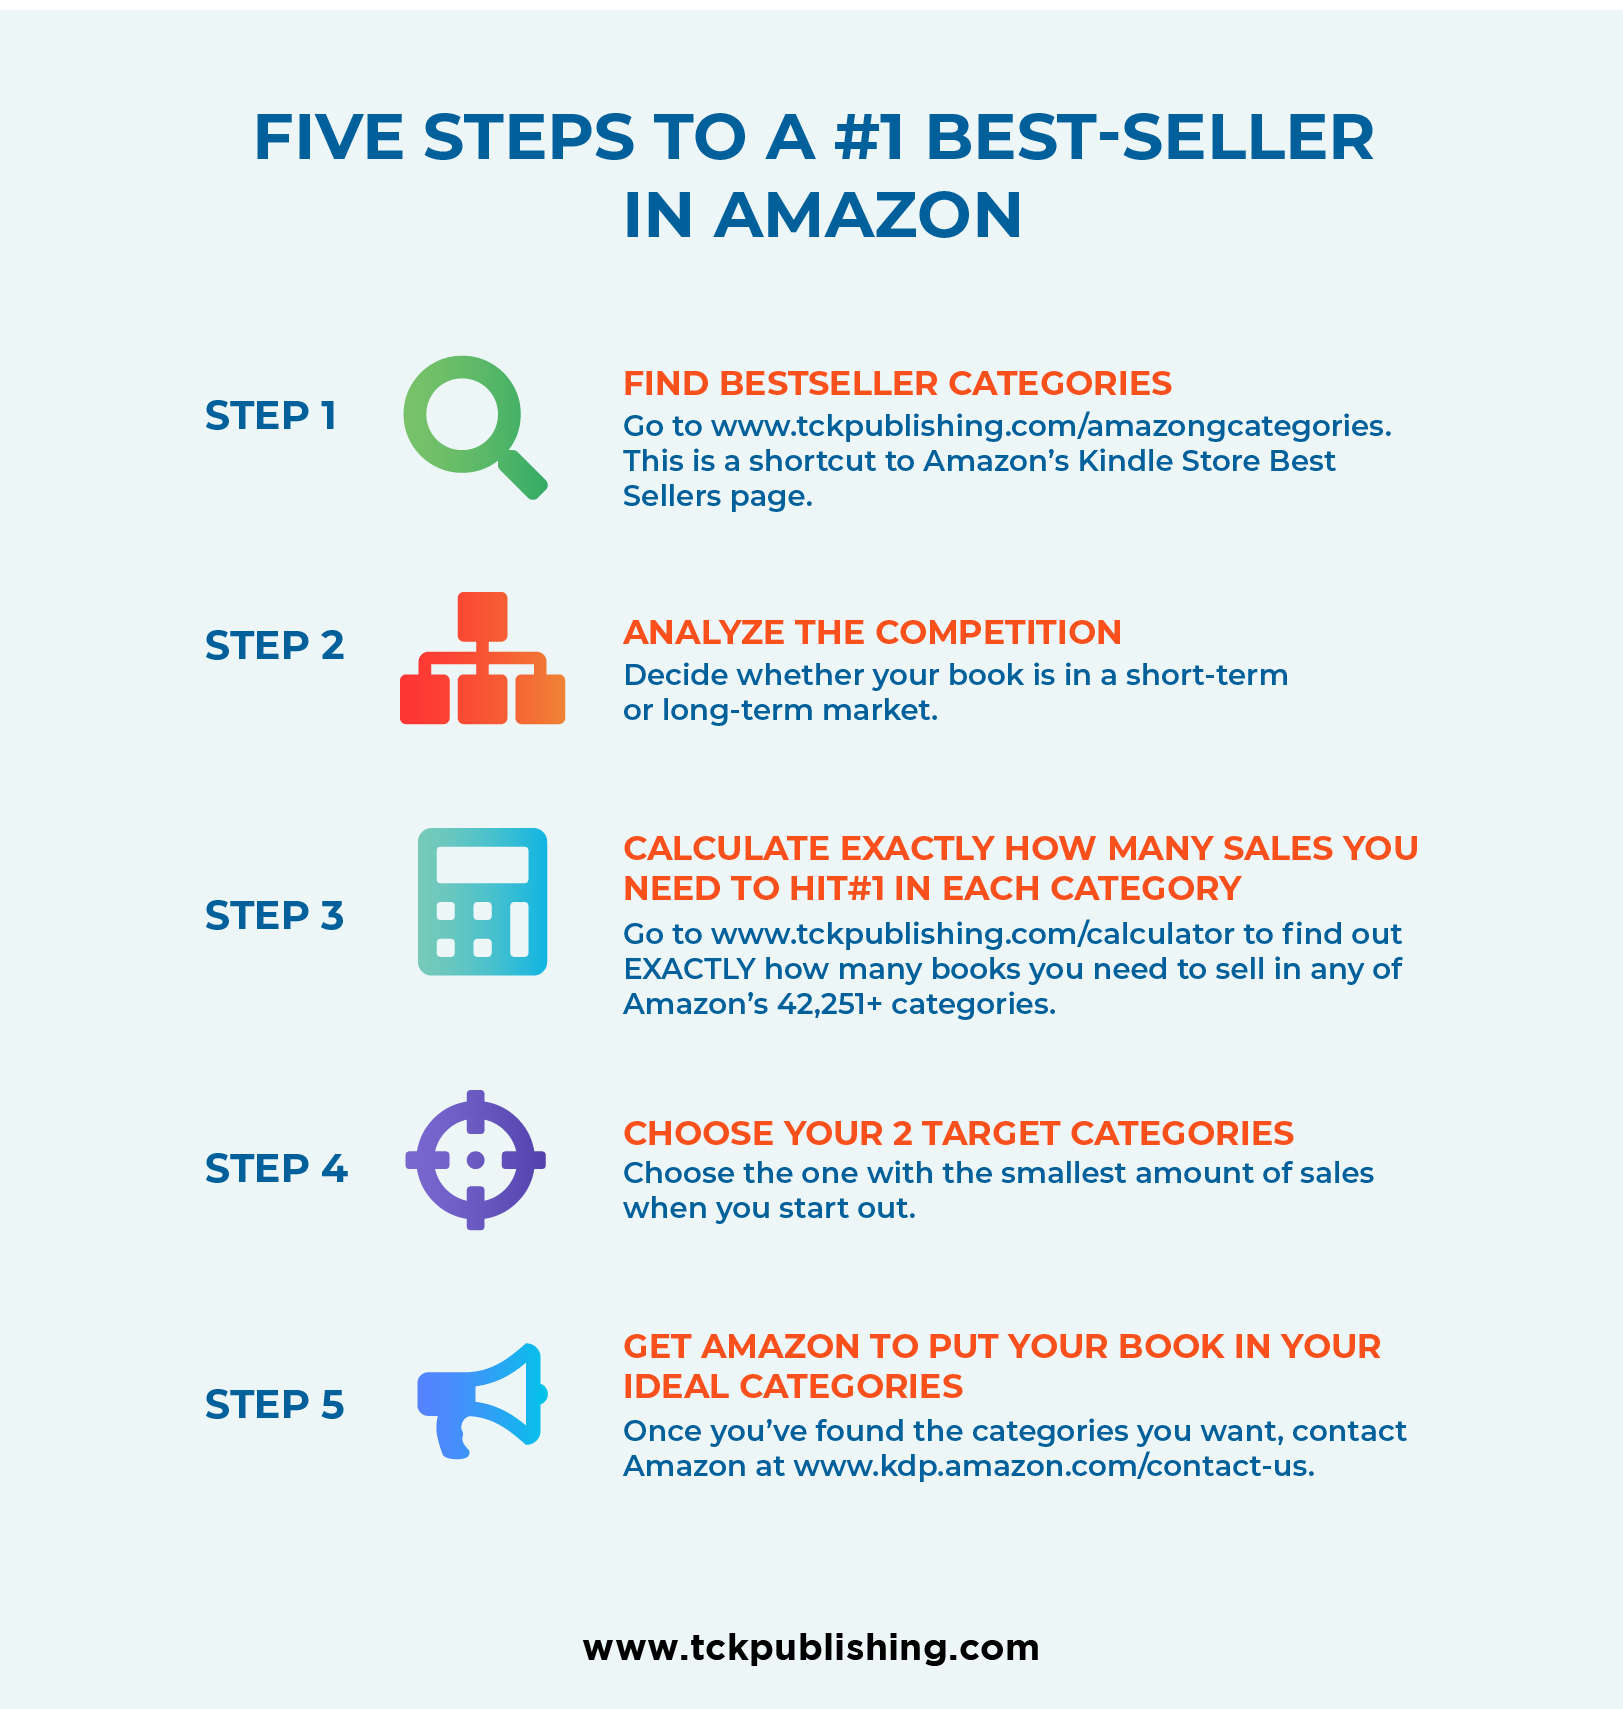 How to Become a #1 Best-Selling Author on Amazon